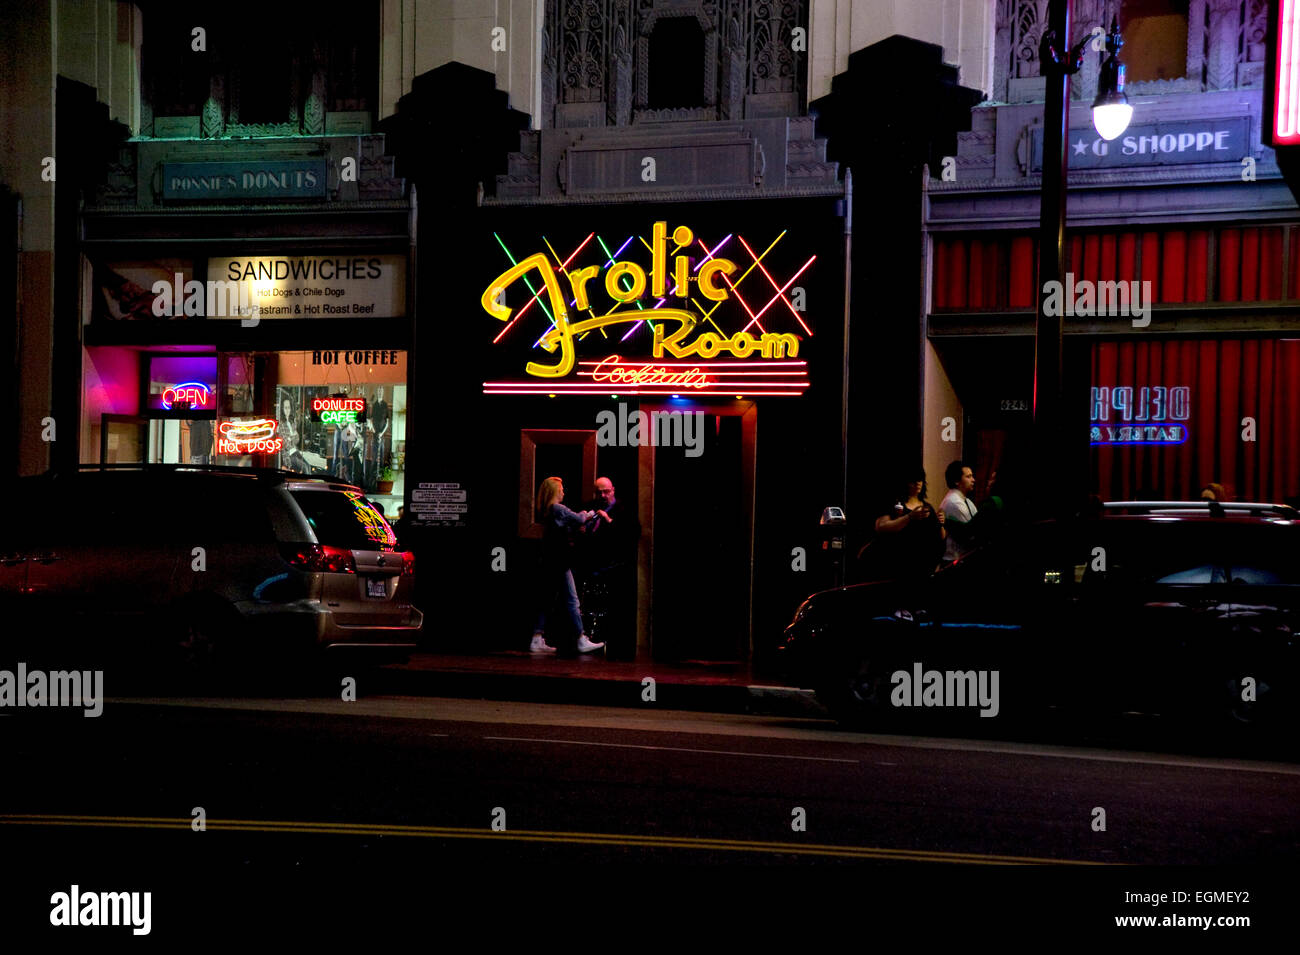 The Frolic Room bar in Hollywood, CA - Stock Image